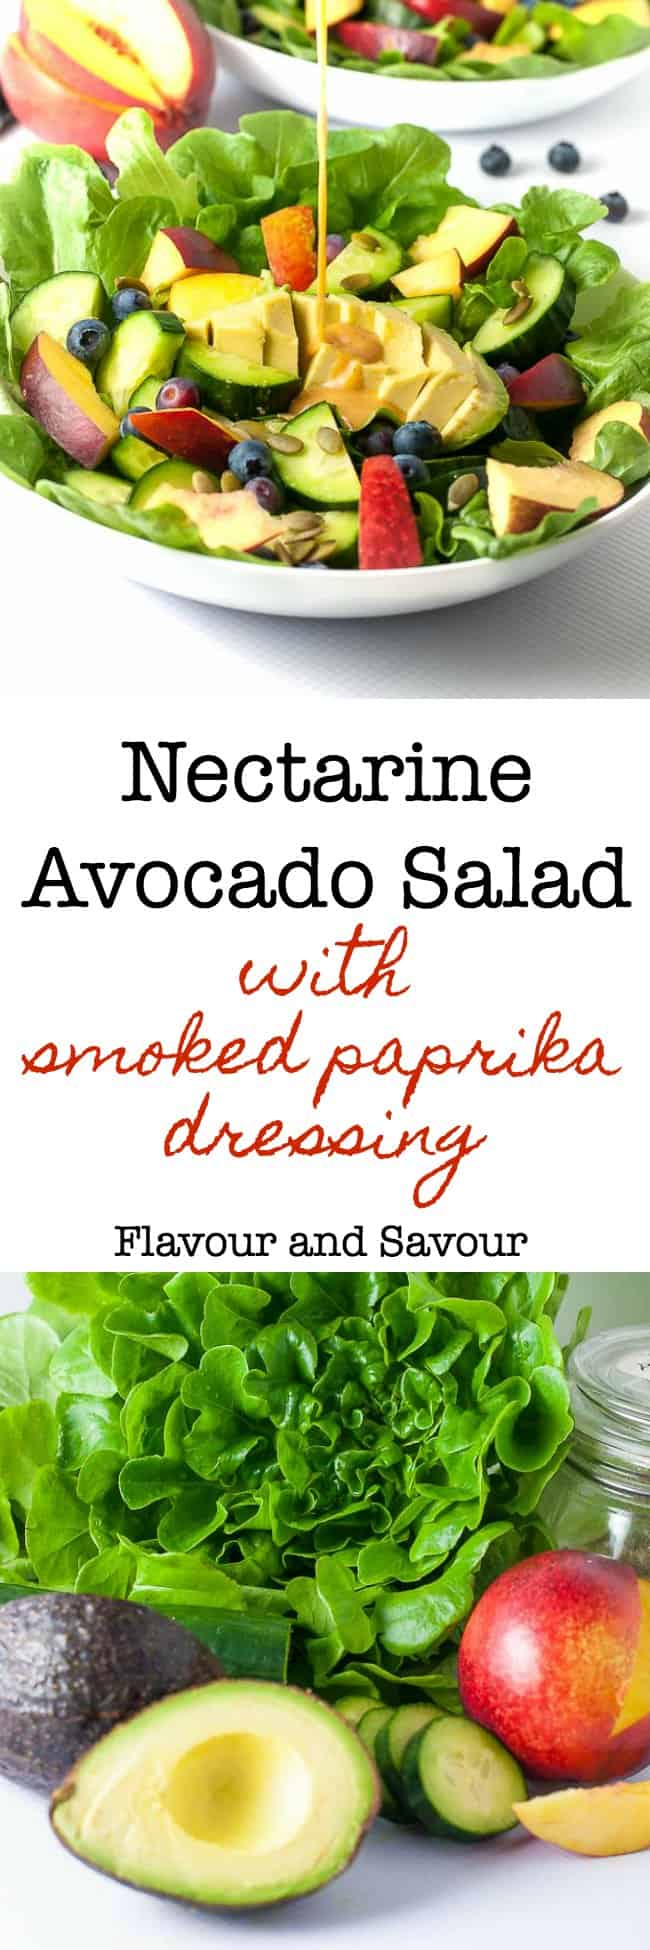 Sweet stone fruit, creamy avocados and crisp cucumbers drizzled with a smoky dressing make this paleo and vegan Nectarine Avocado Salad a superb addition to a summertime meal. #paleo #glutenfree #avocado #nectarine #pumpkin_seeds #summer_salad